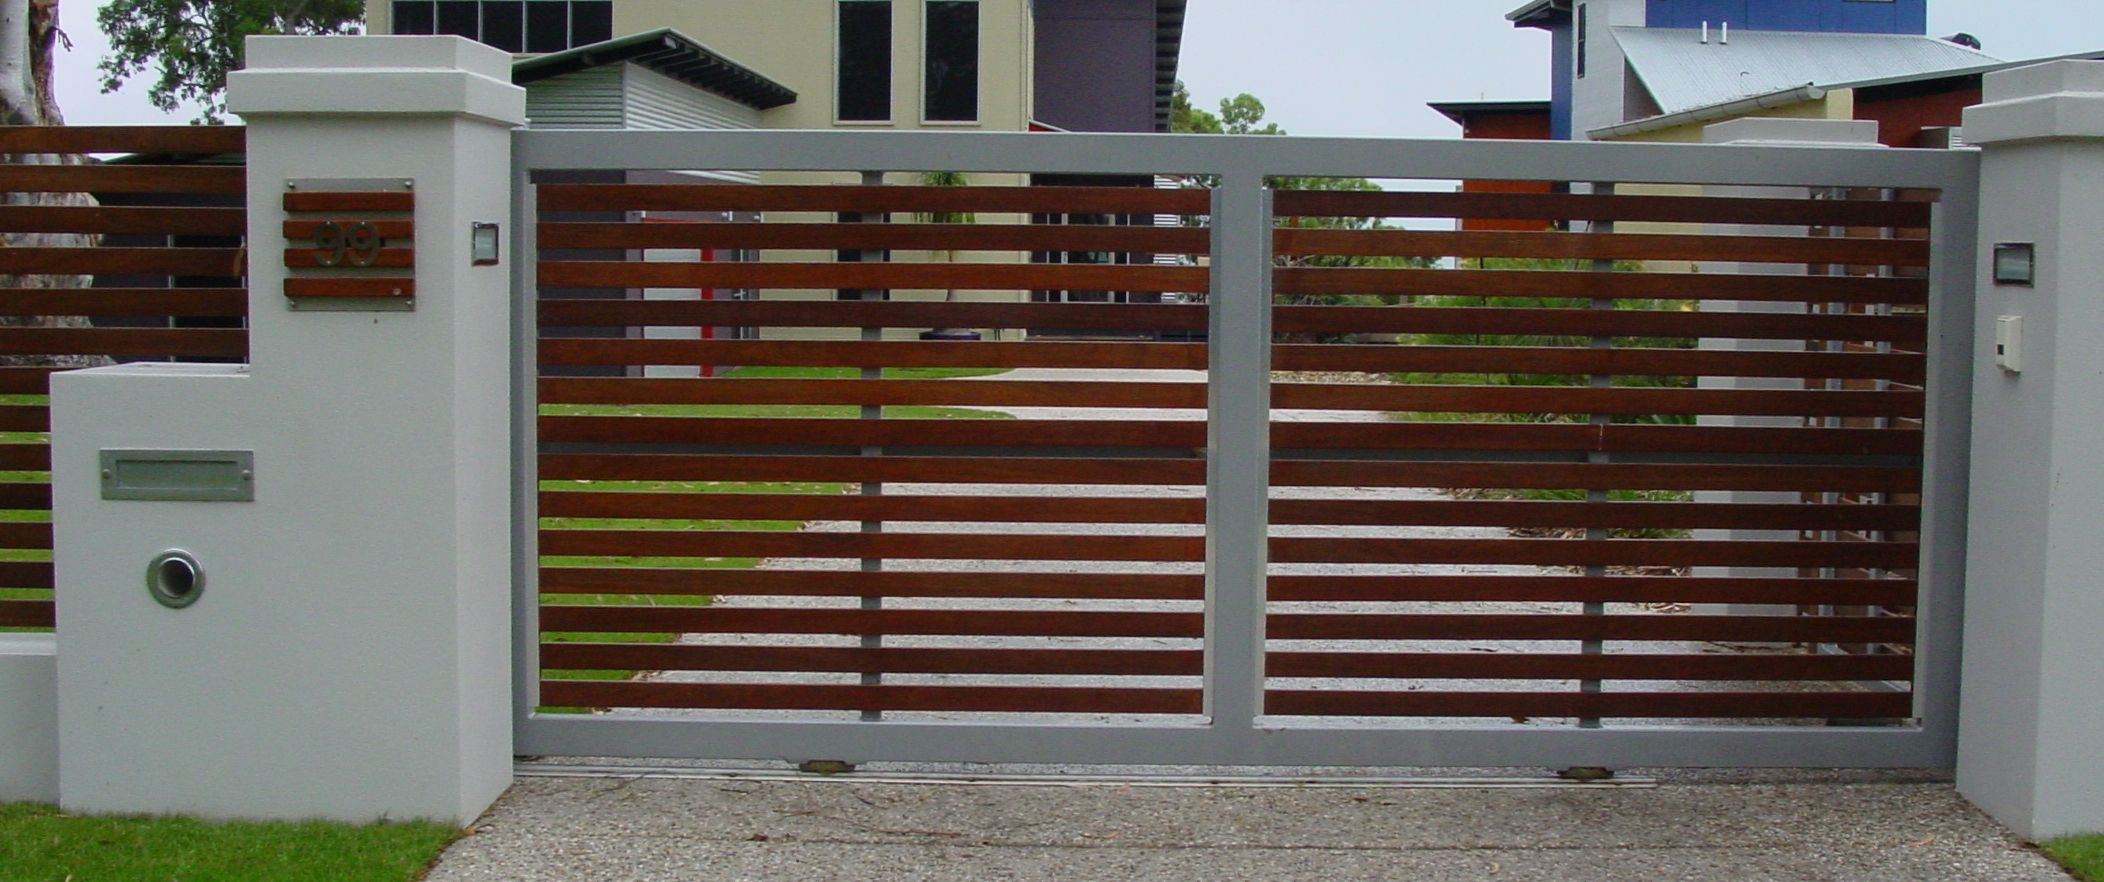 Sliding Gate For Garage Sliding Gates Pictures Image Gallery Brisbane Automatic